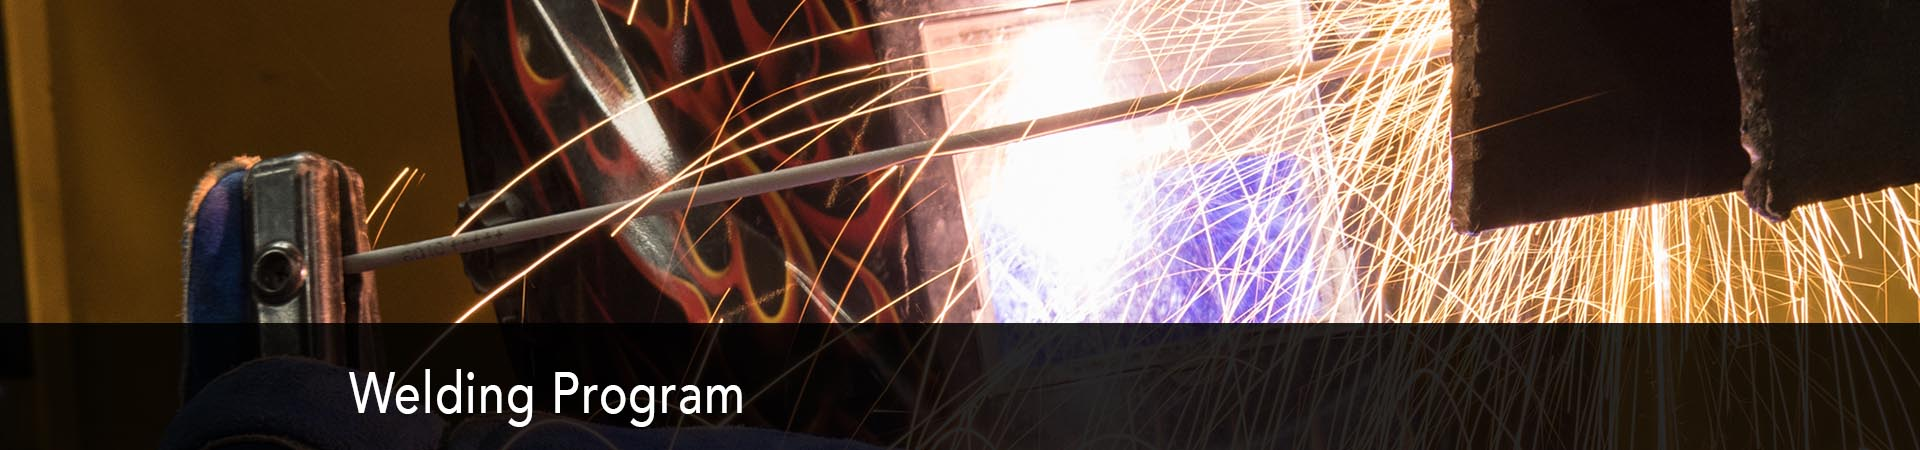 Explore the Welding Program at NC